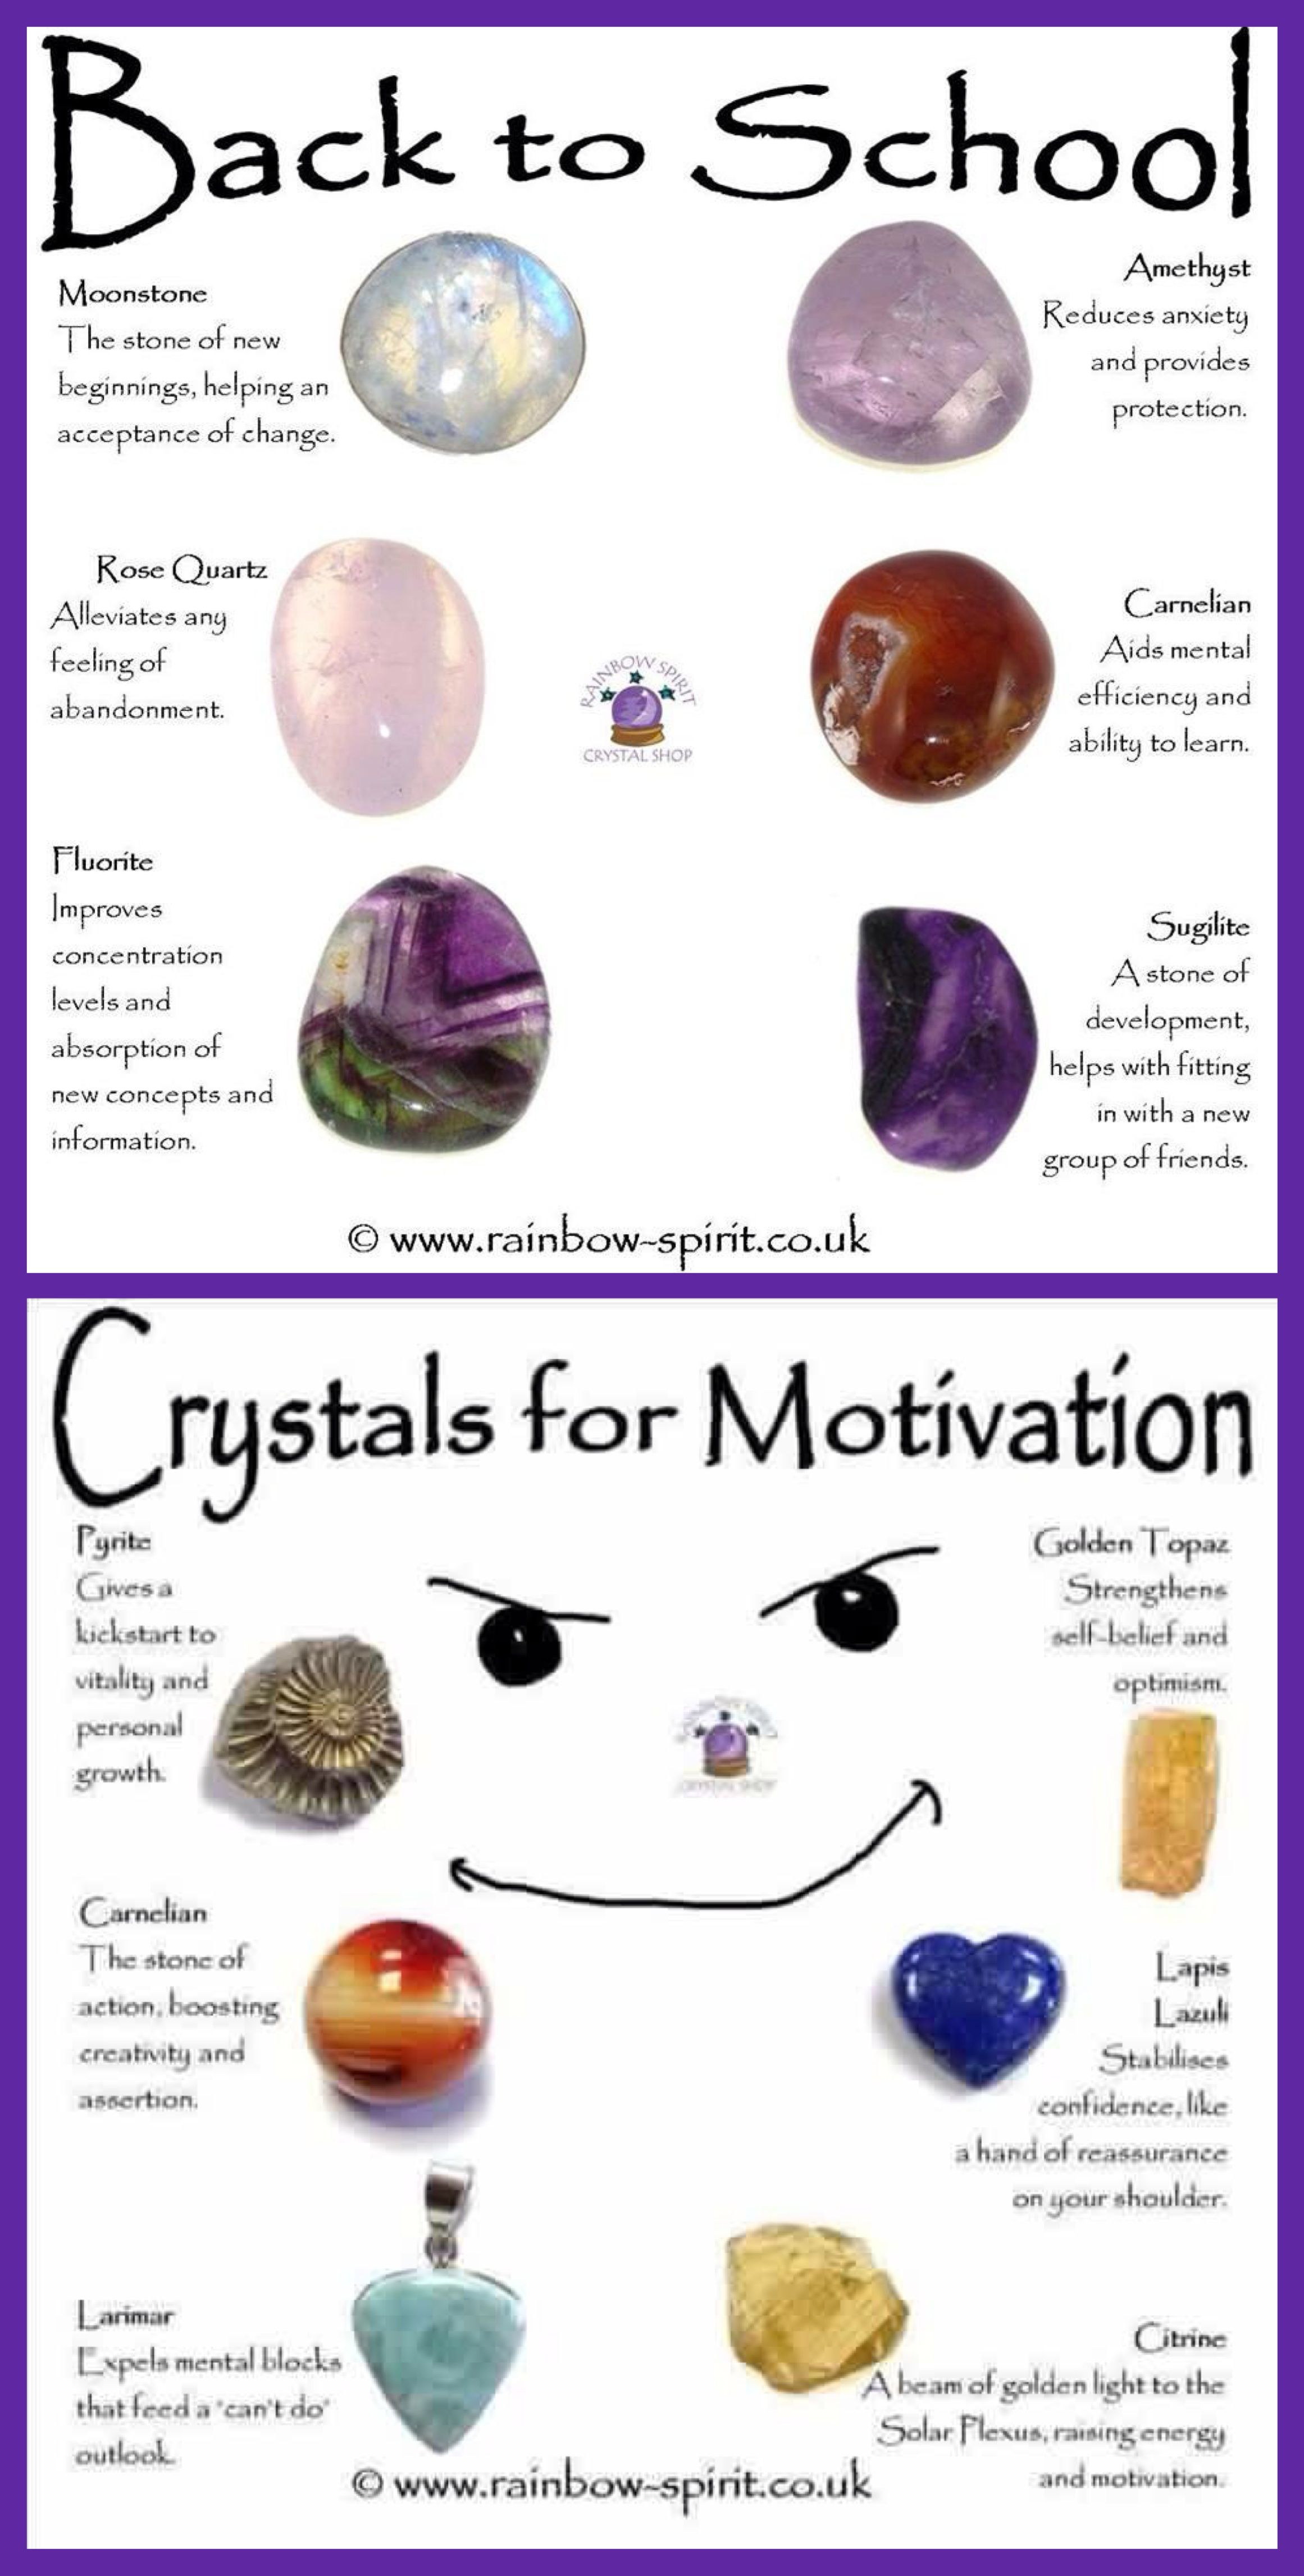 Back to school and motivation crystals with images